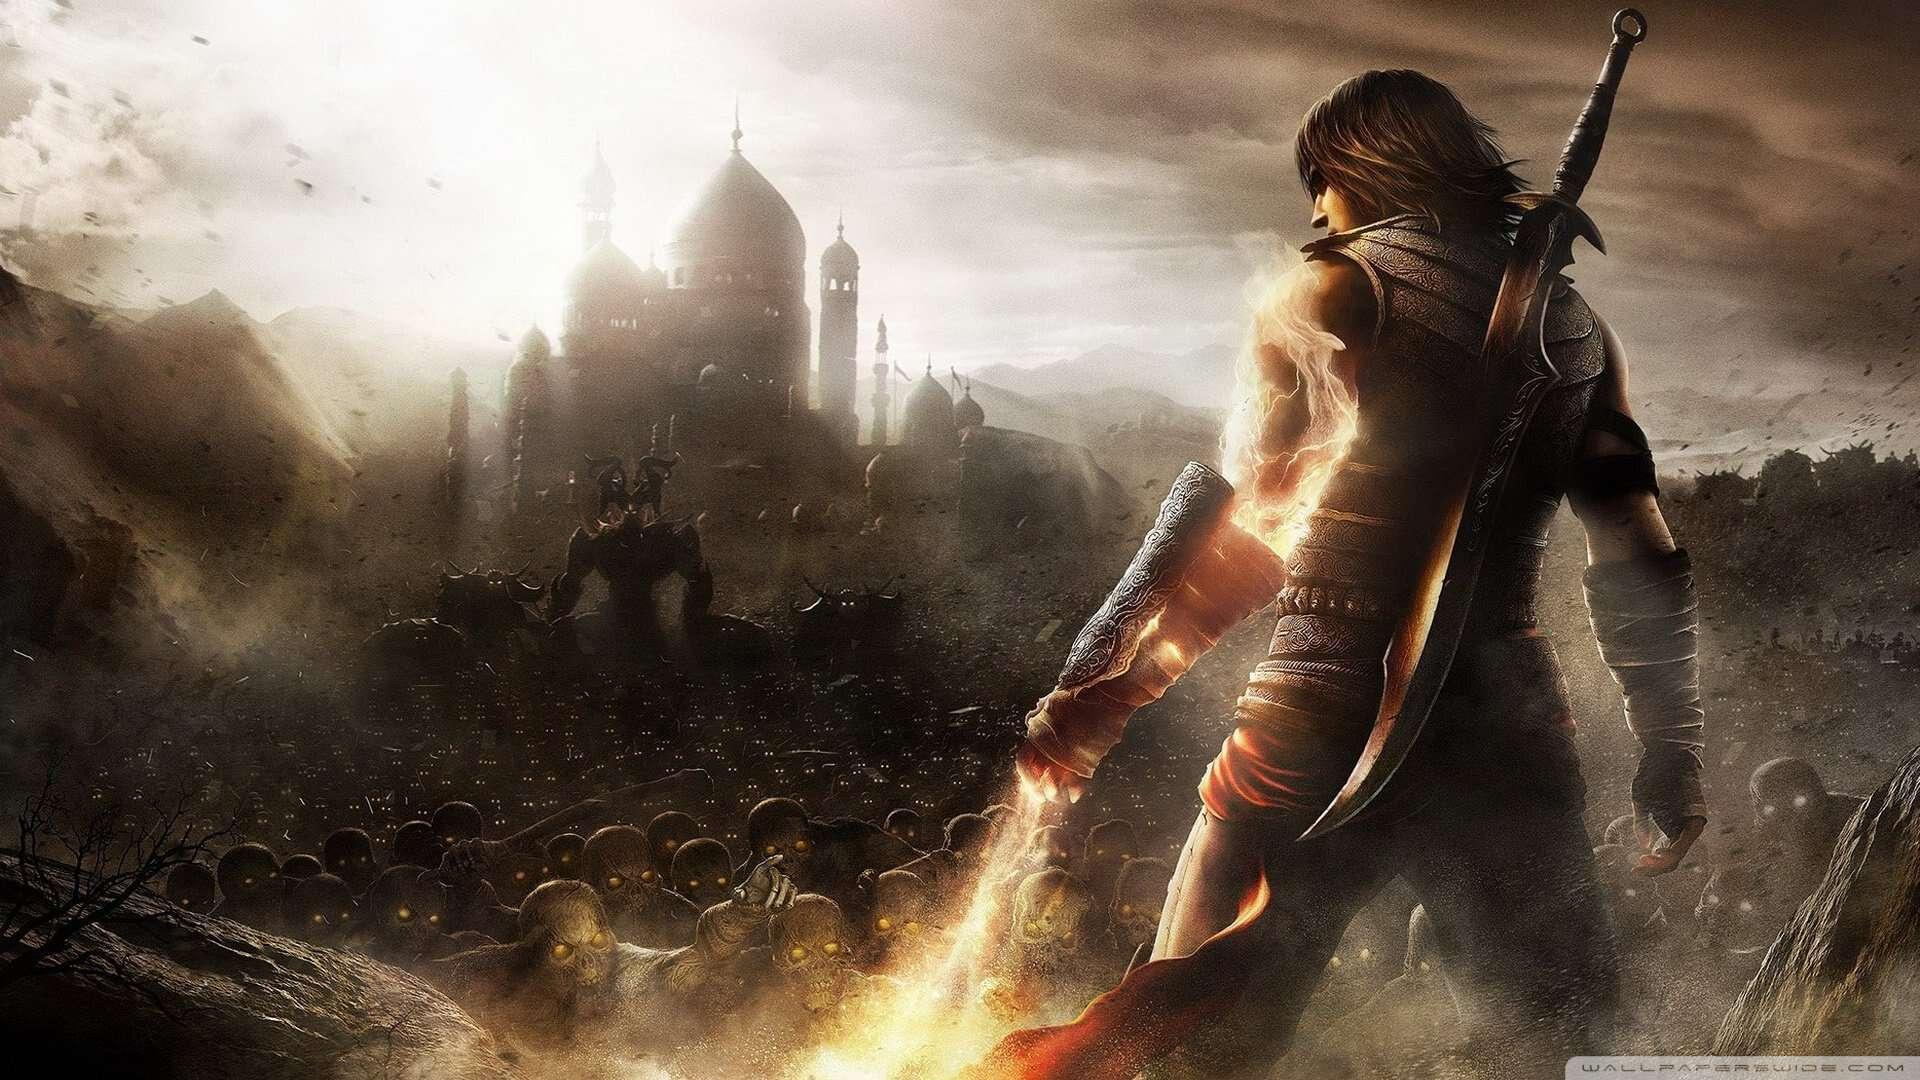 Prince of Persia 5: The Forgotten Sands Intro PC Version Full Game Free Download